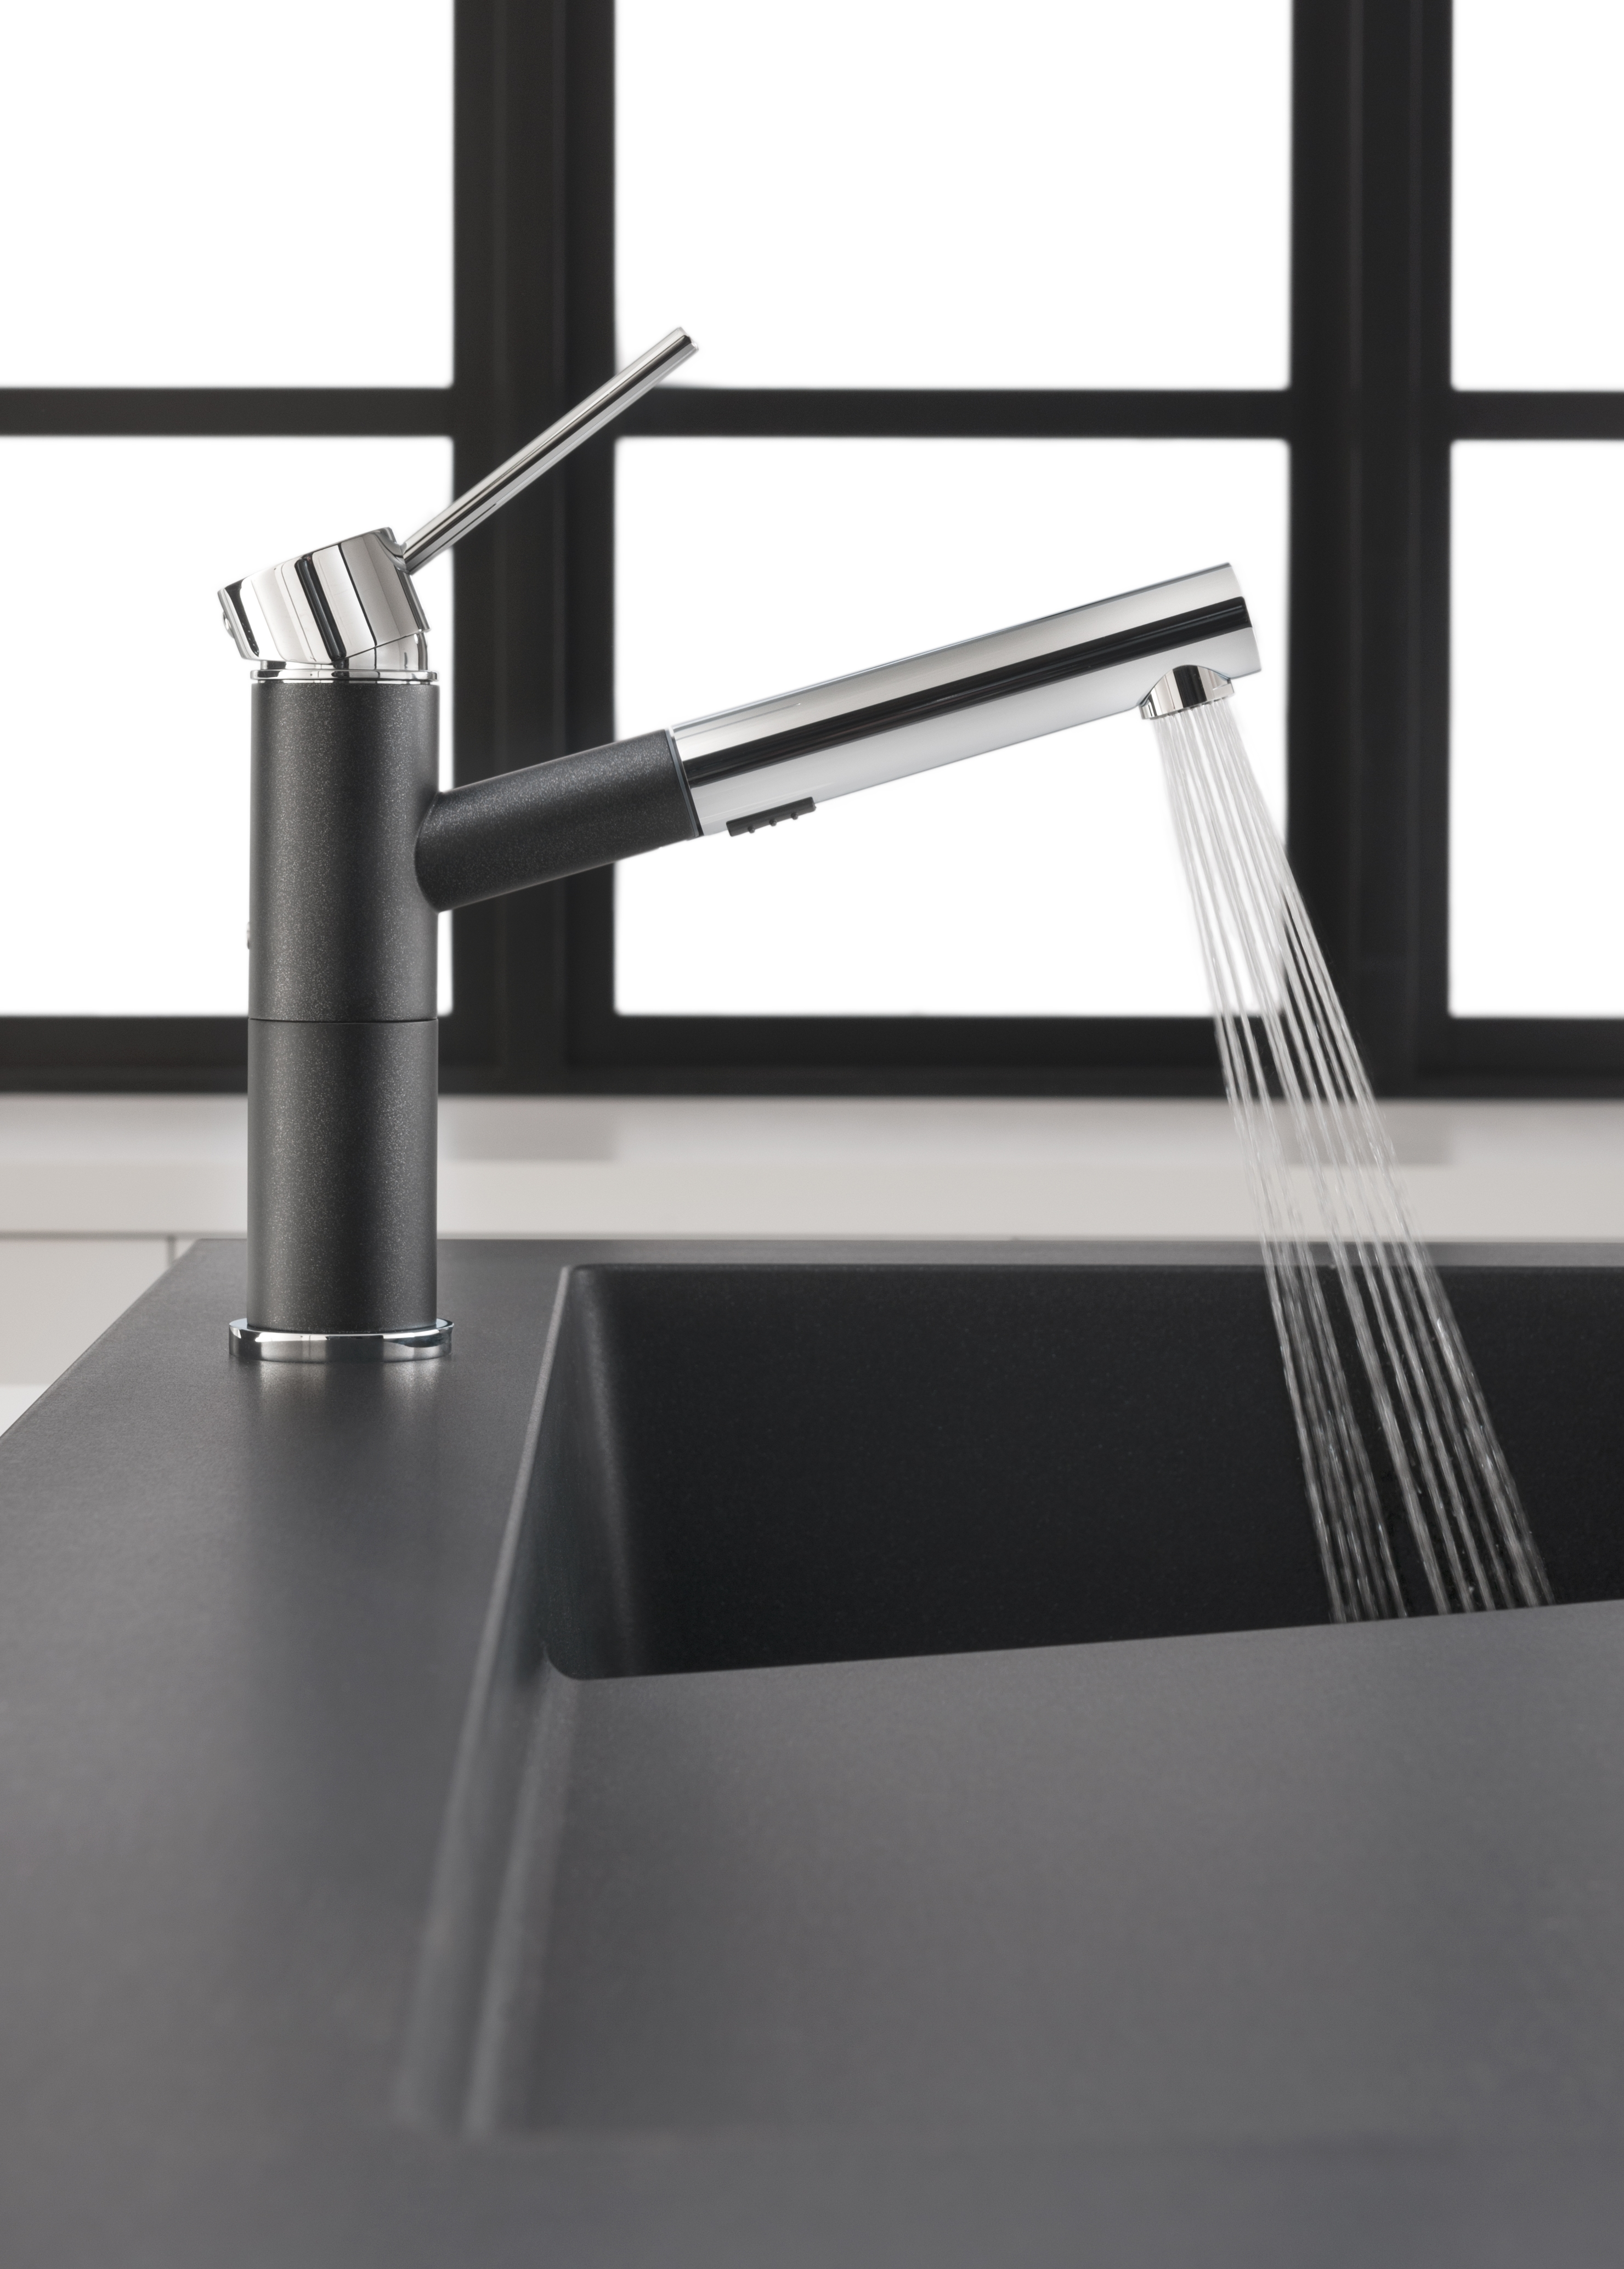 blanco alta compact faucet blanco alta compact faucet alta compact faucet modex kitchen sink blanco architects 2961 x 4137